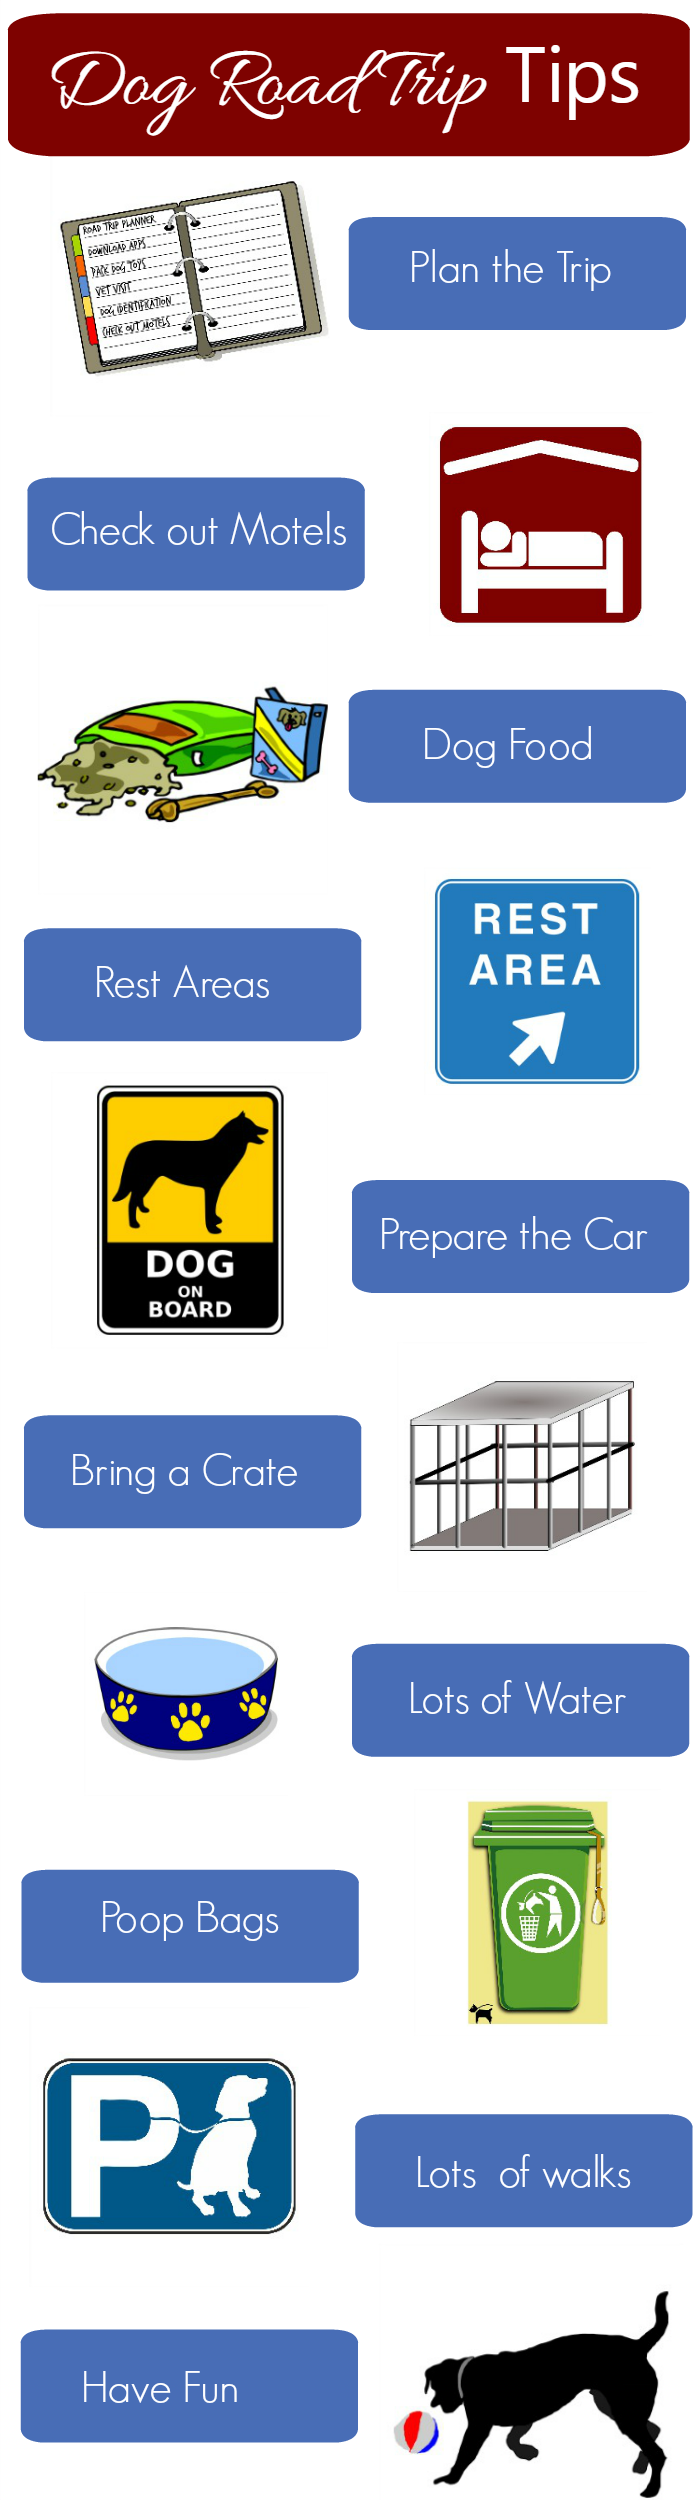 Are you planning on taking a road trip with your dog? Thsi dog road trip 101 printable graphic should help you to be ready for the trip.. #RoadTripClose #DENTASTIX #ad